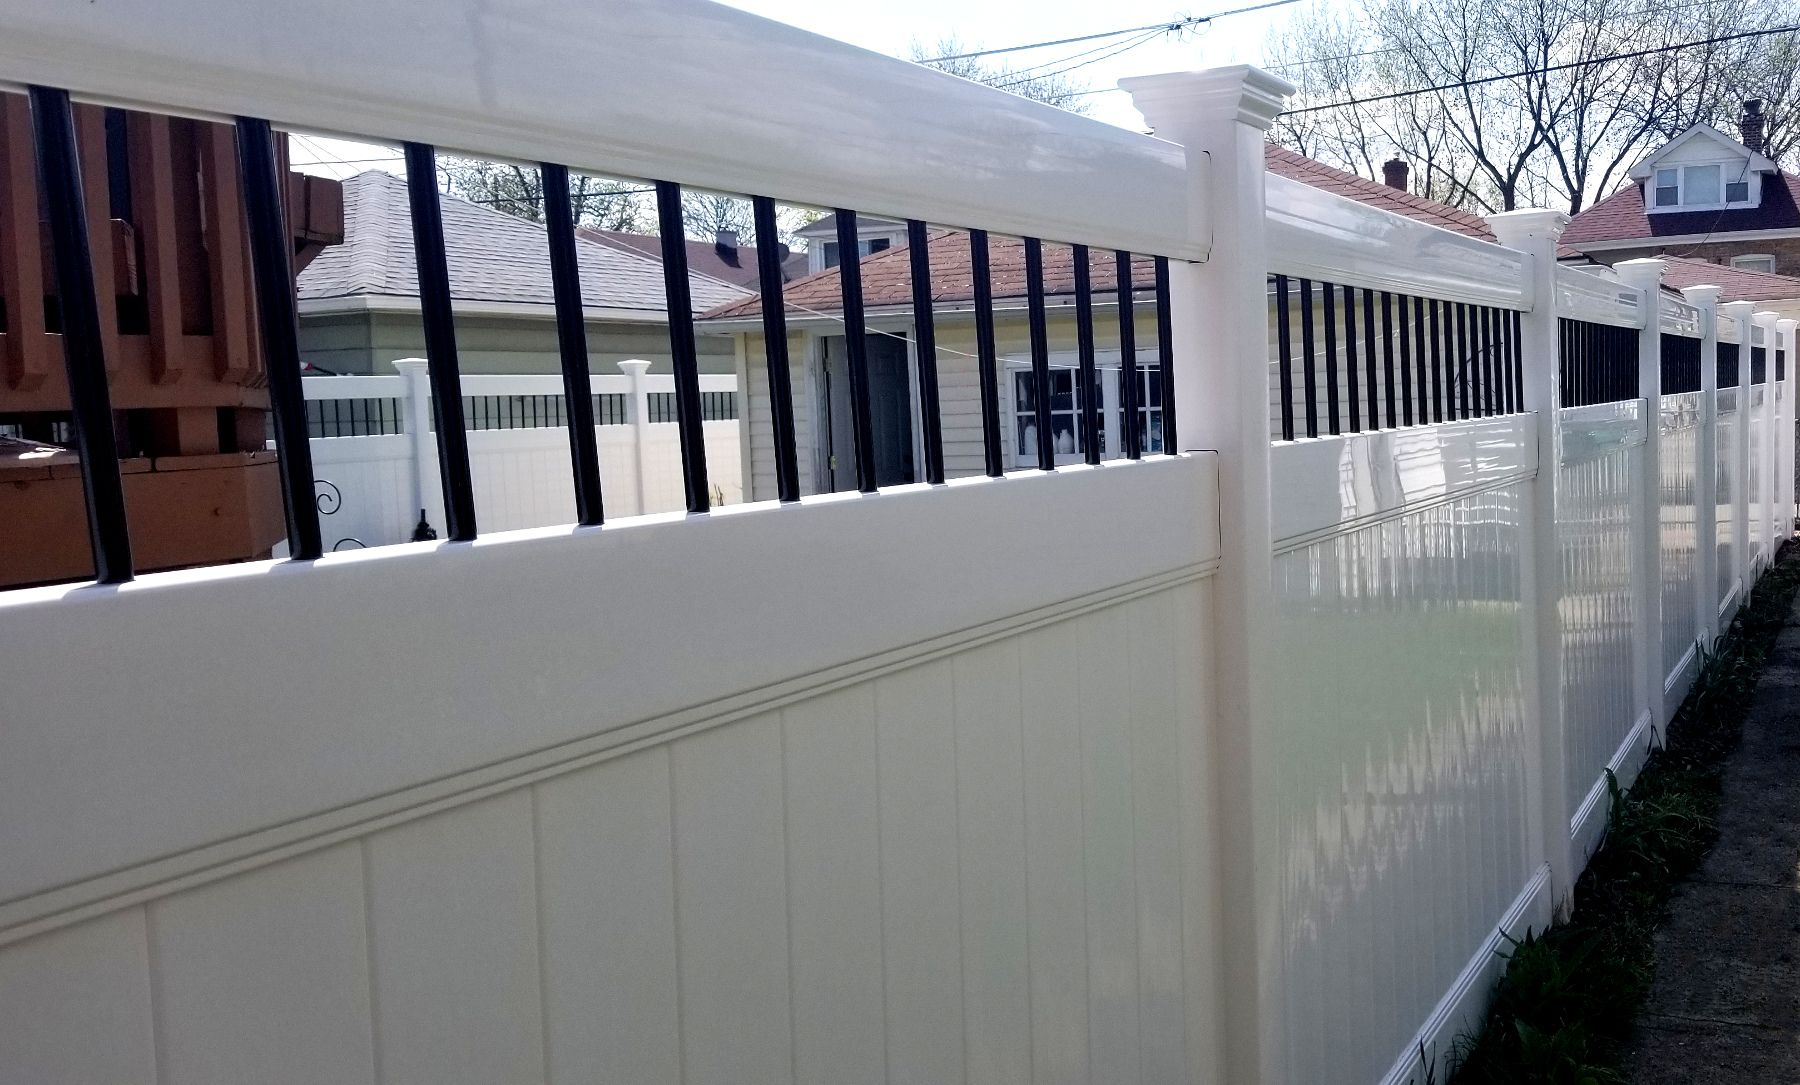 Here S A Recent Installation Of An Activeyards Persimmon Style Fence The Round Black Aluminum Spindles Provid Vinyl Fence Vinyl Fence Panels White Vinyl Fence